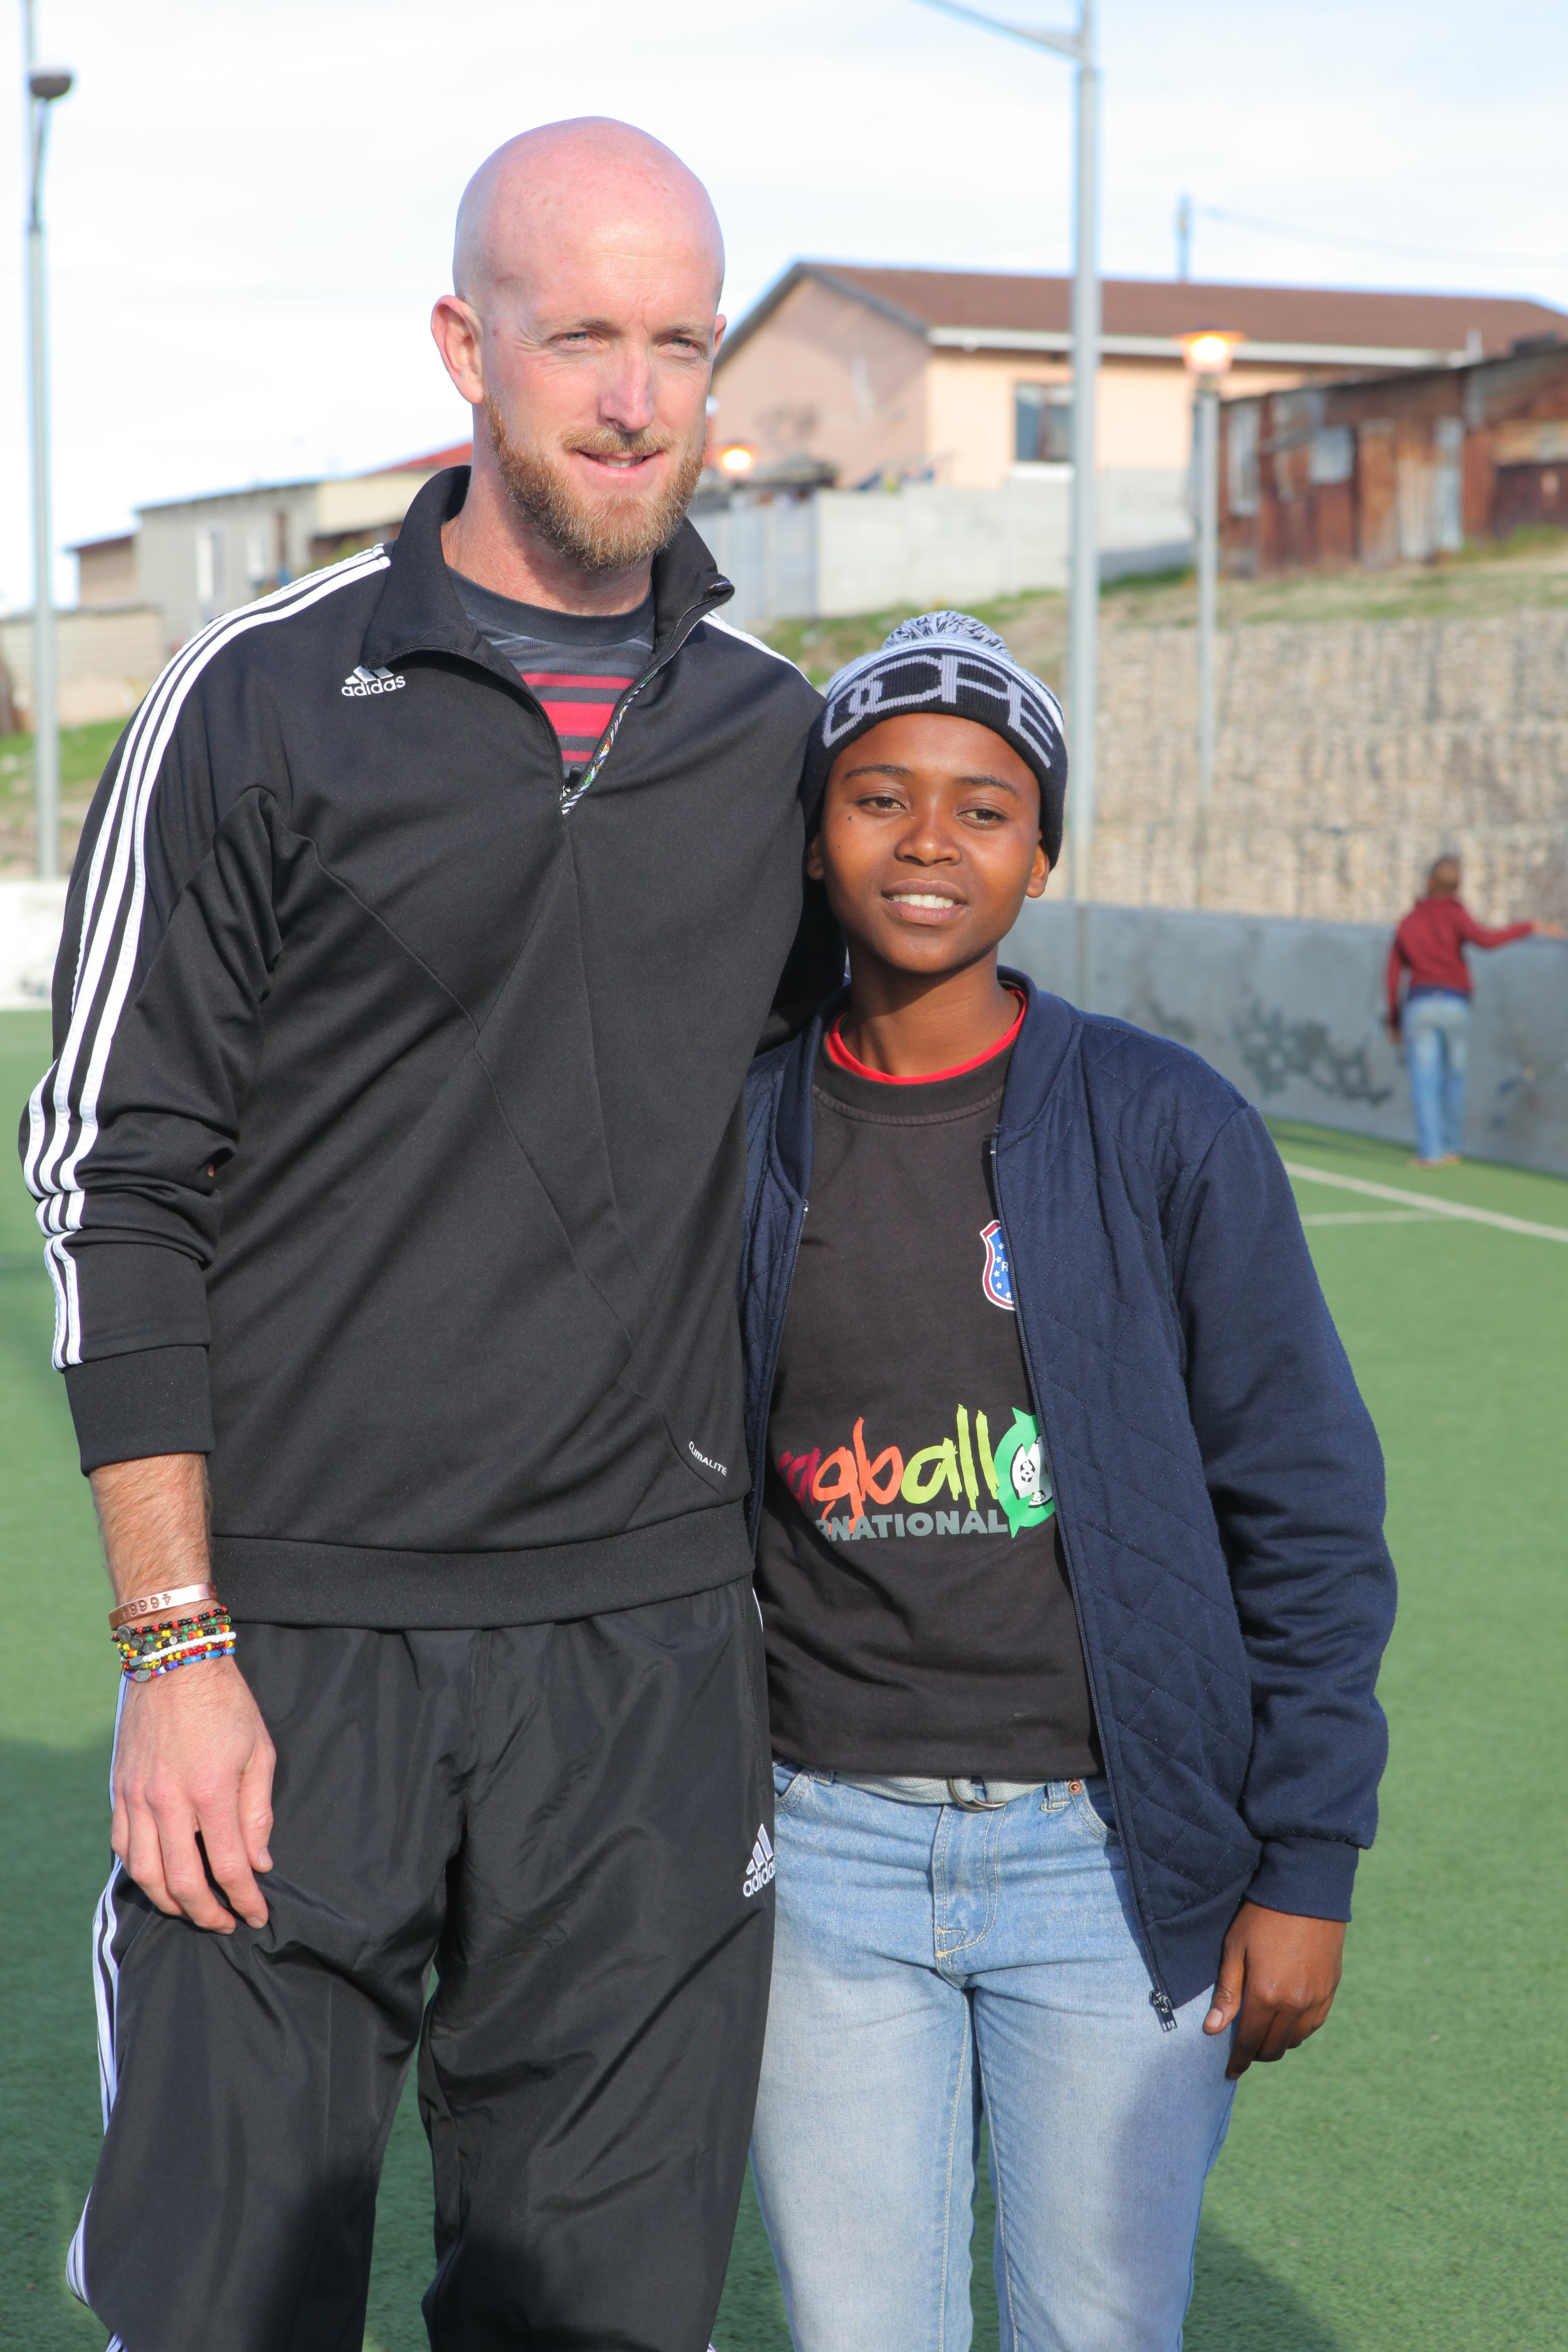 Senior RV player and Ragball artist with South African Bafana Bafana star Matthew Booth